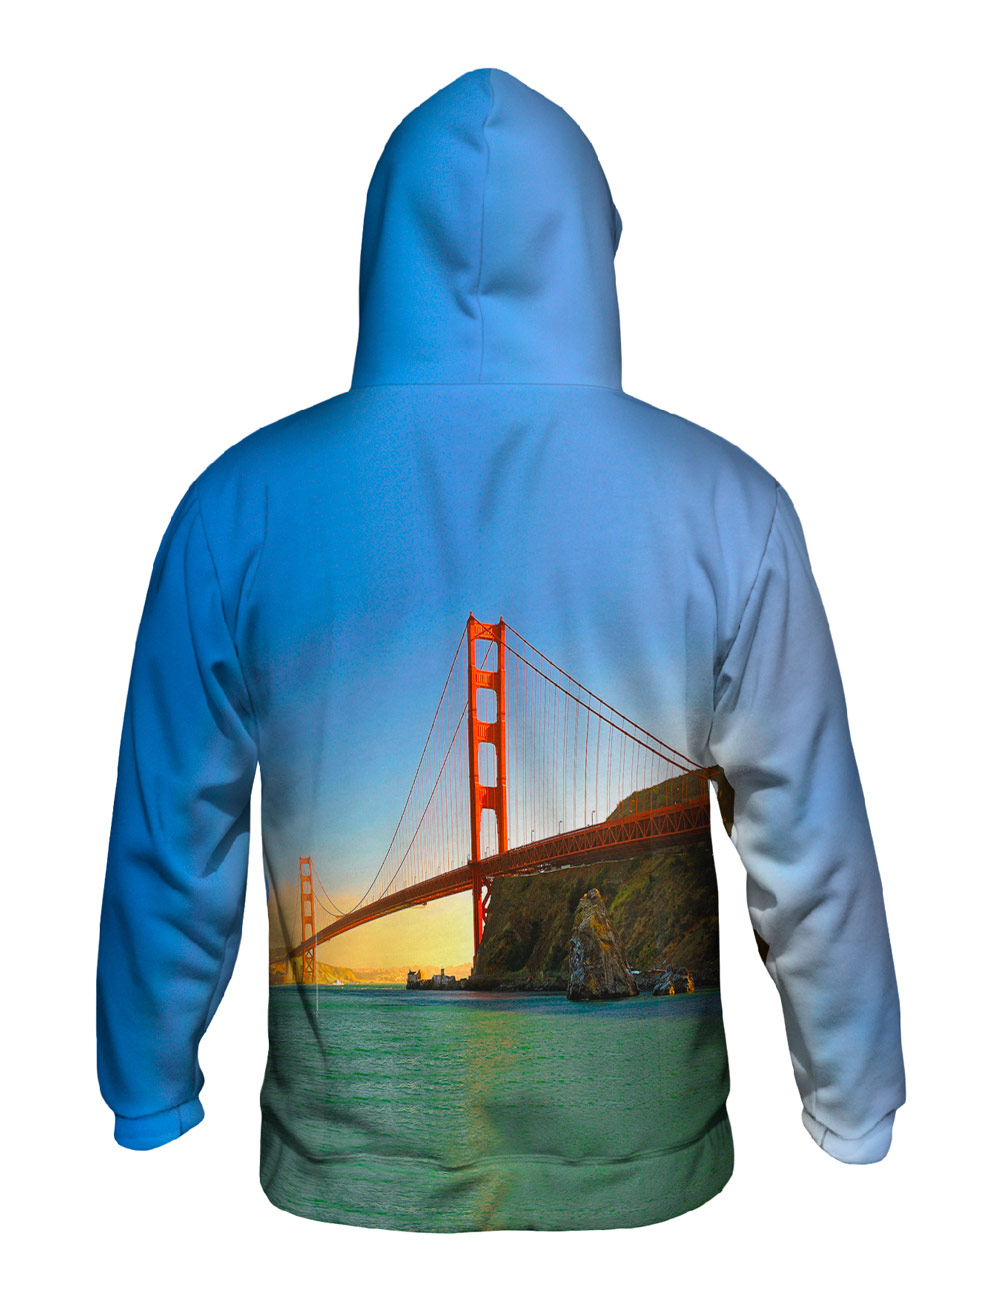 Yizzam- Still Waters Golden Gate Bridge - New    Herren Hoodie Sweater XS S M L XL 2 e403c1